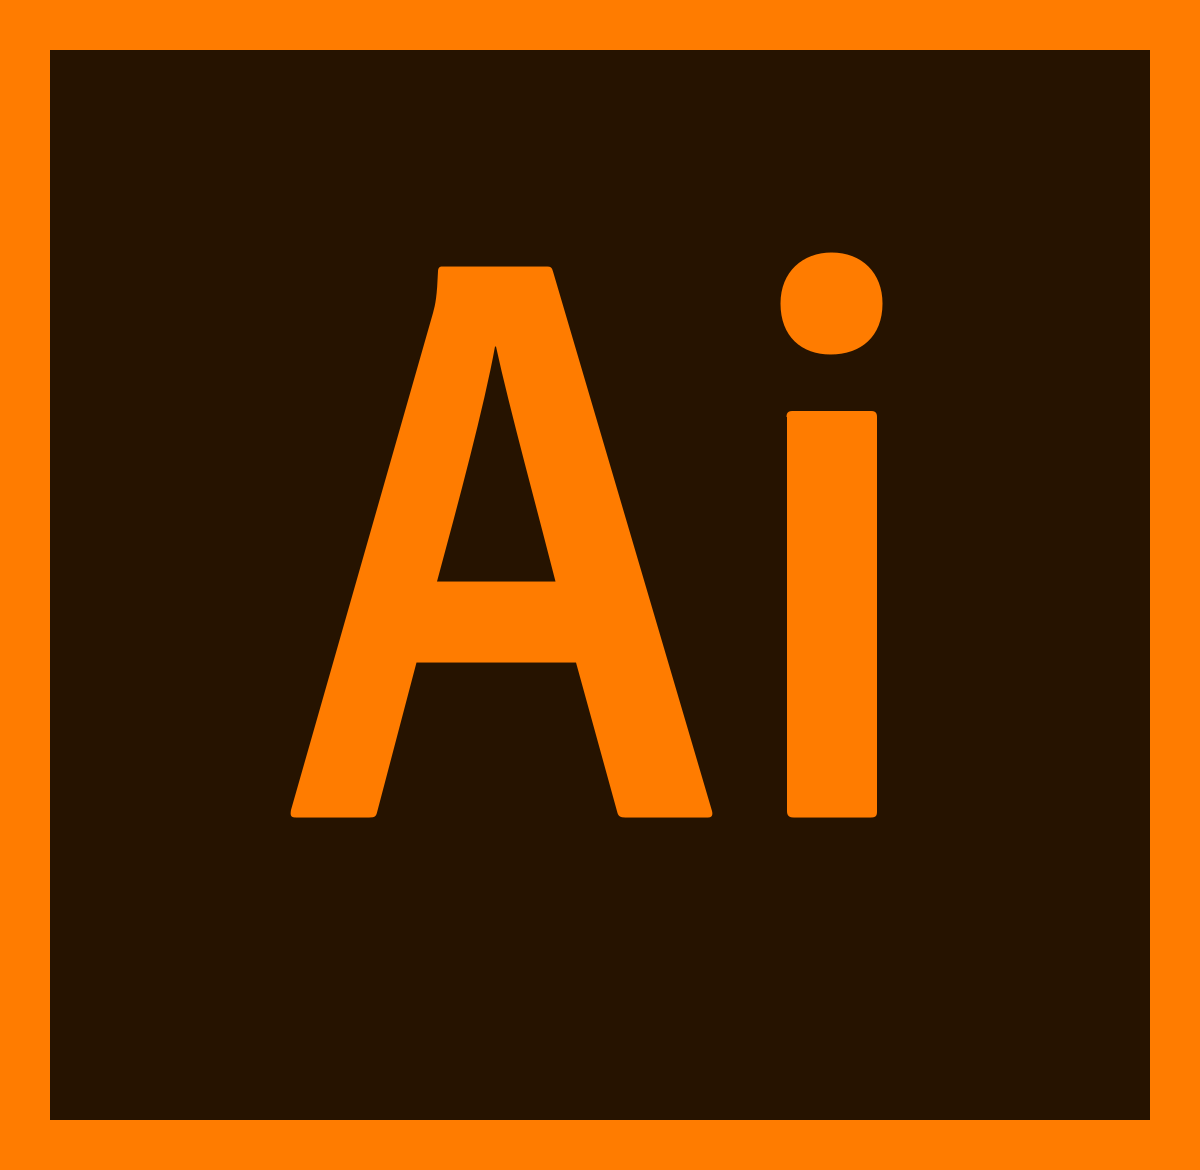 Adobe Illustrator CC 2018 22.0.0 Patch